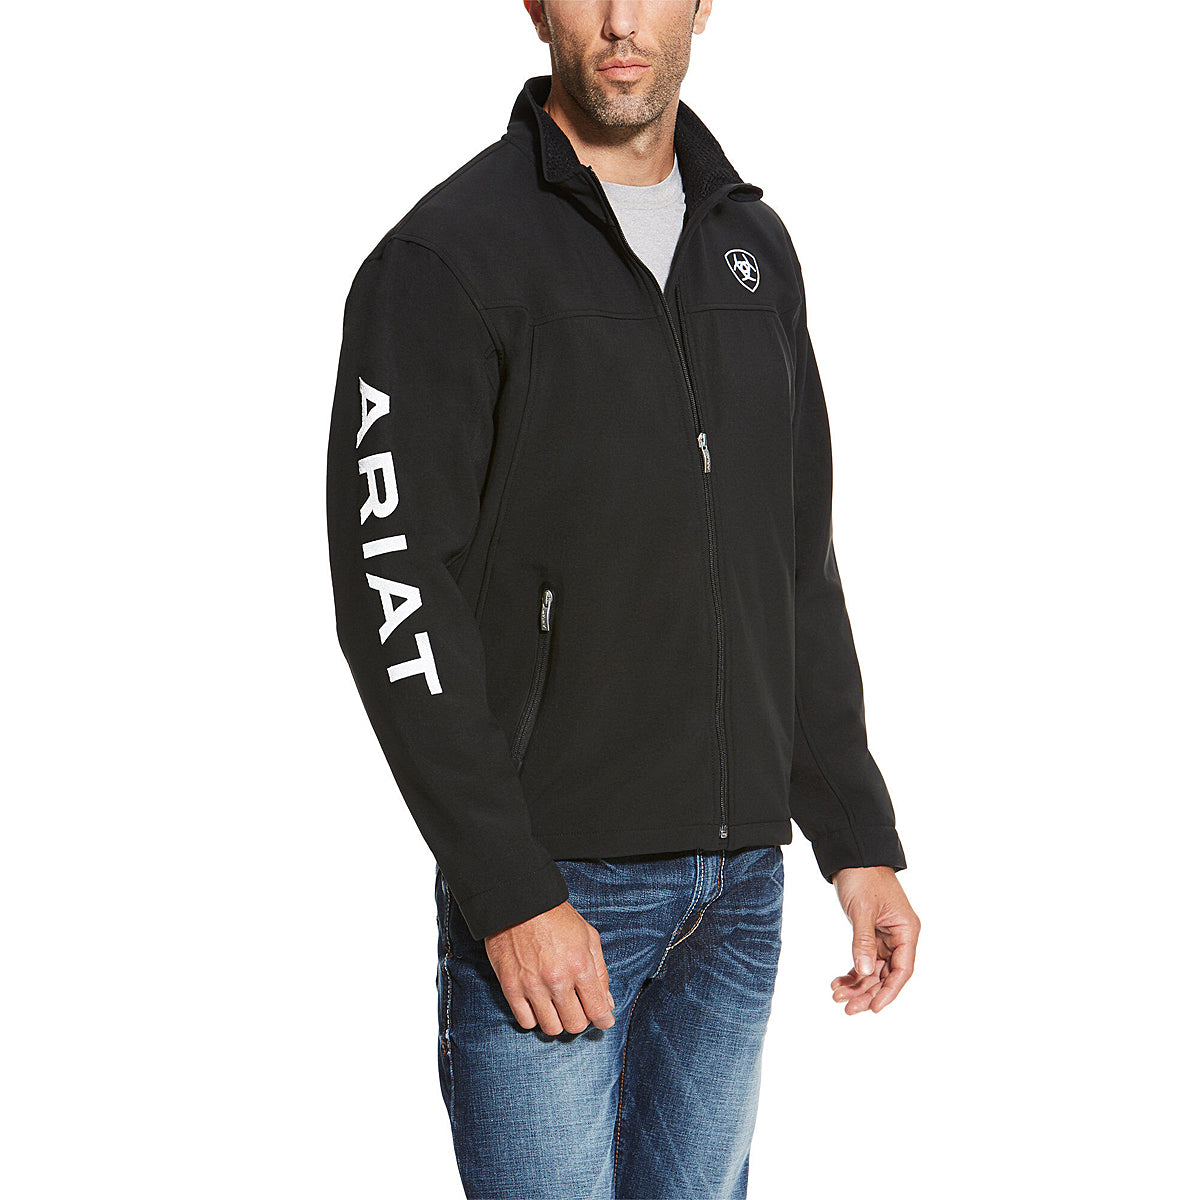 Ariat Men's New Team Softshell